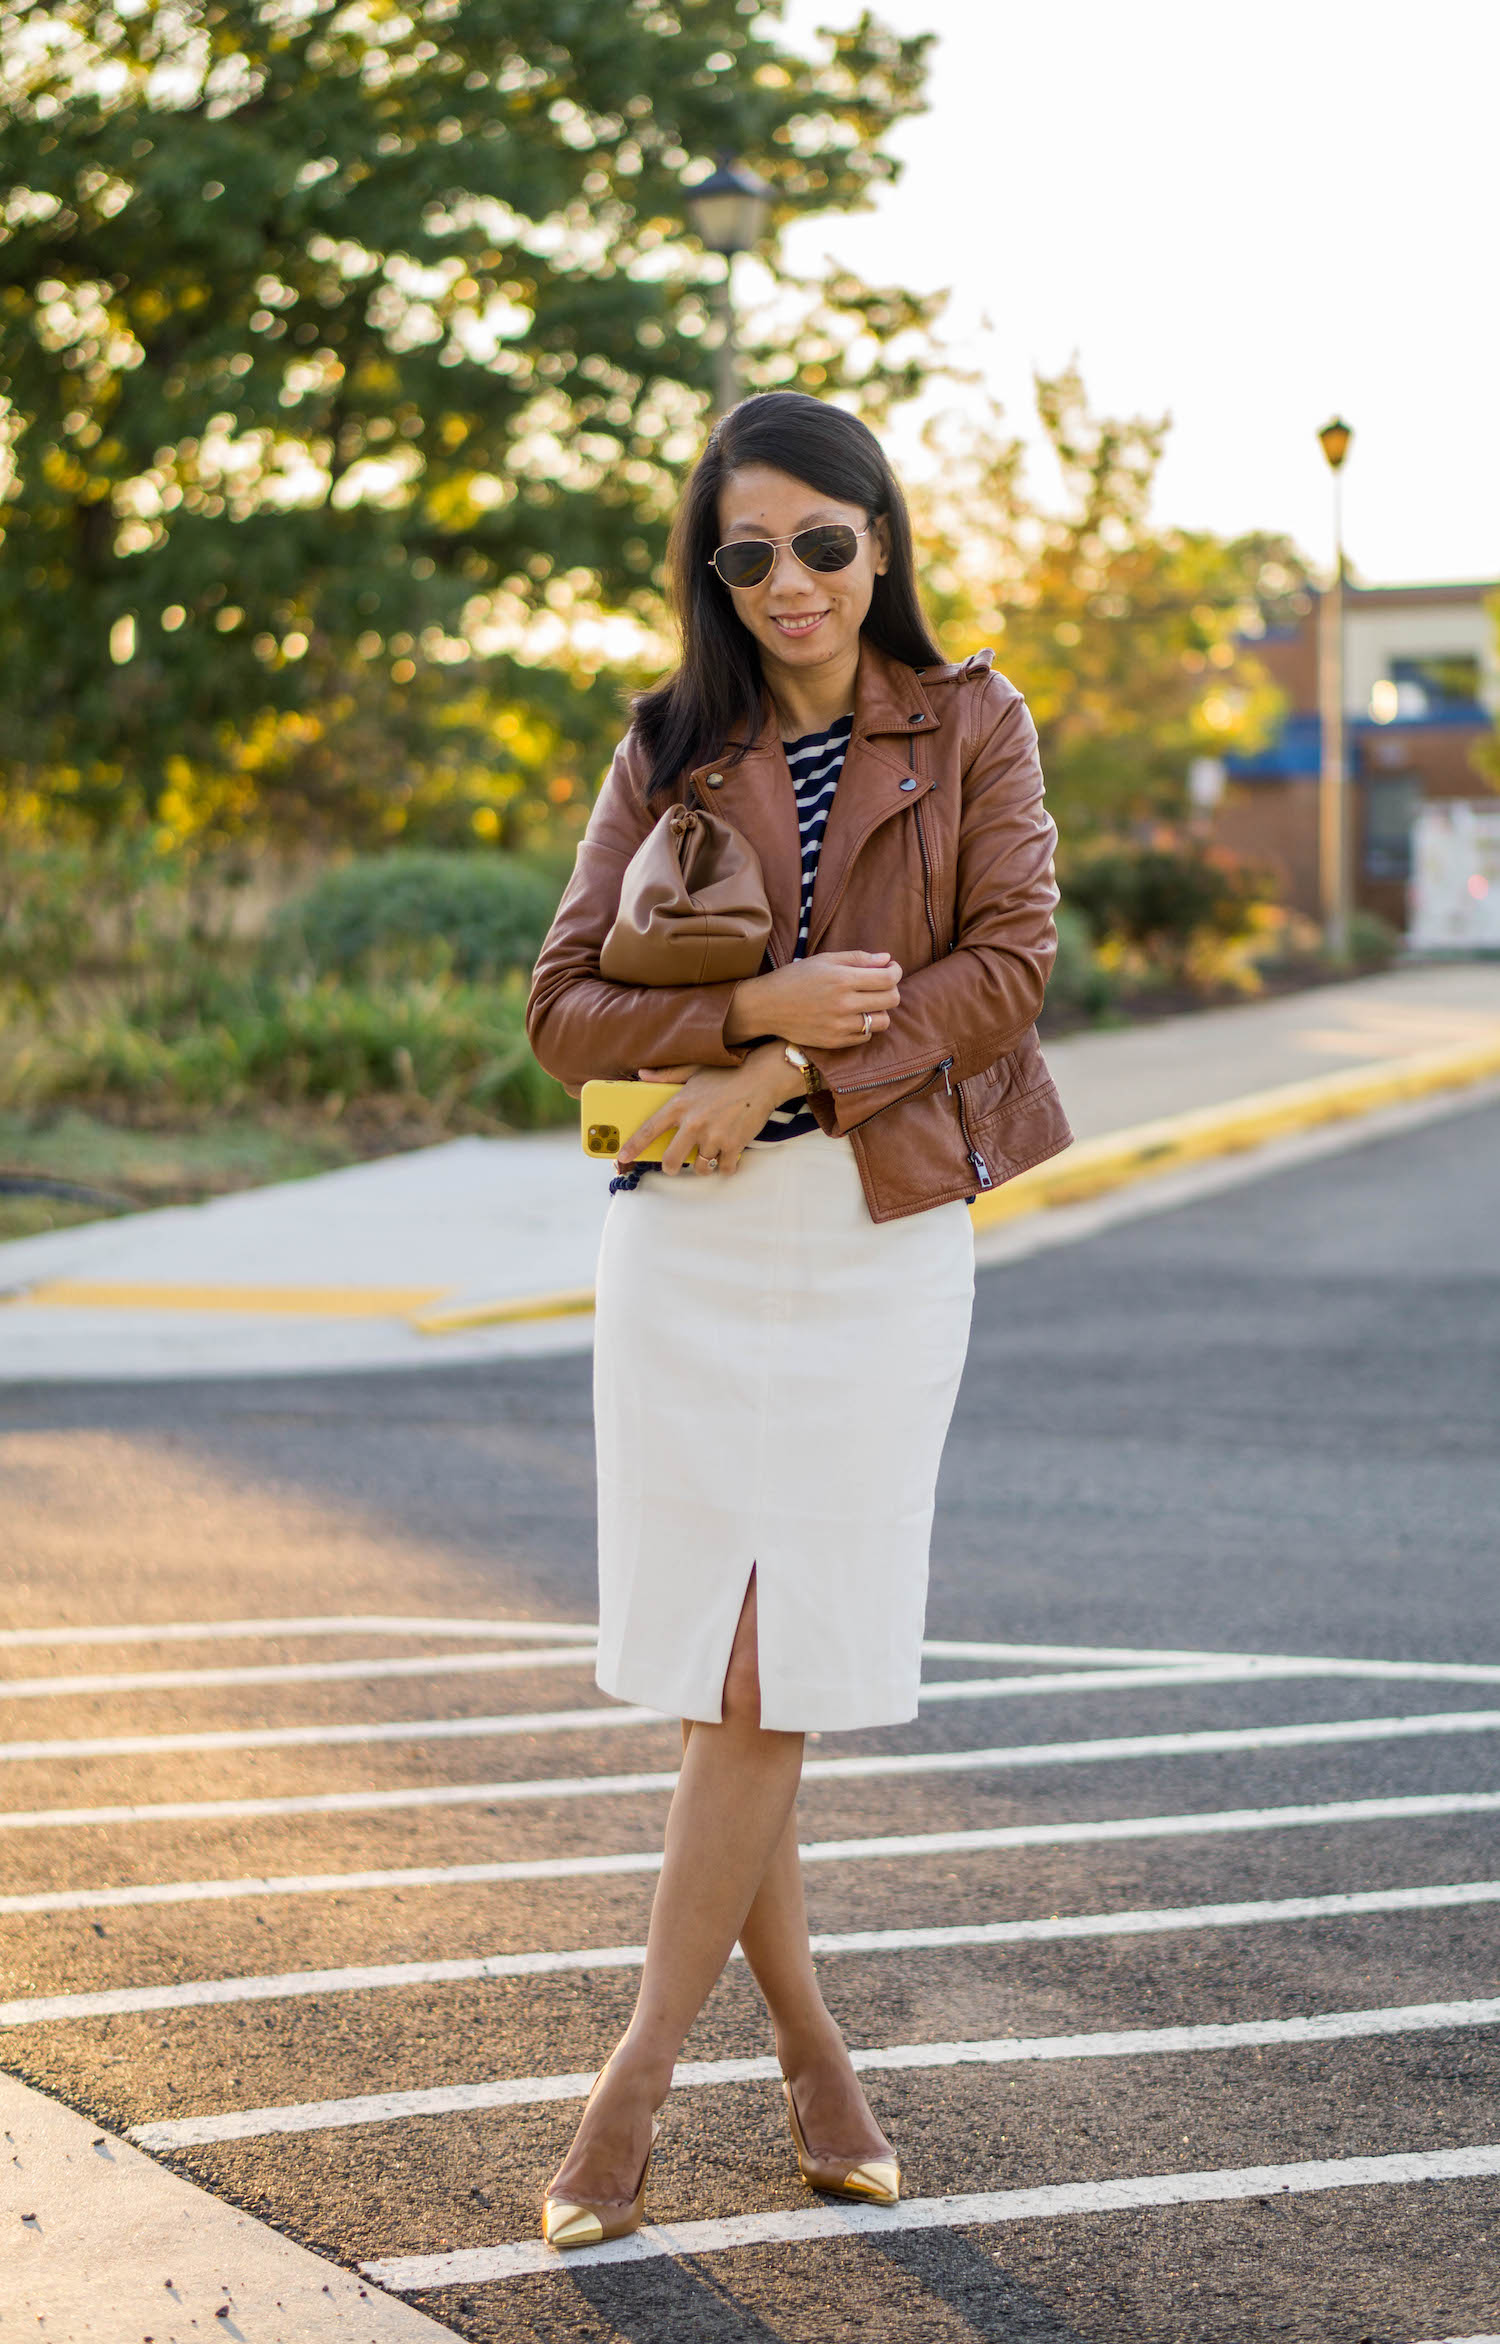 Banana Republic caramel leather moto jacket, J.Crew navy striped top, Looks Like Summer Claudette leather crossbody bag, Ann Taylor white front slit pencil skirt, Tory Burch Penelope metallic cap-toe slingback pump